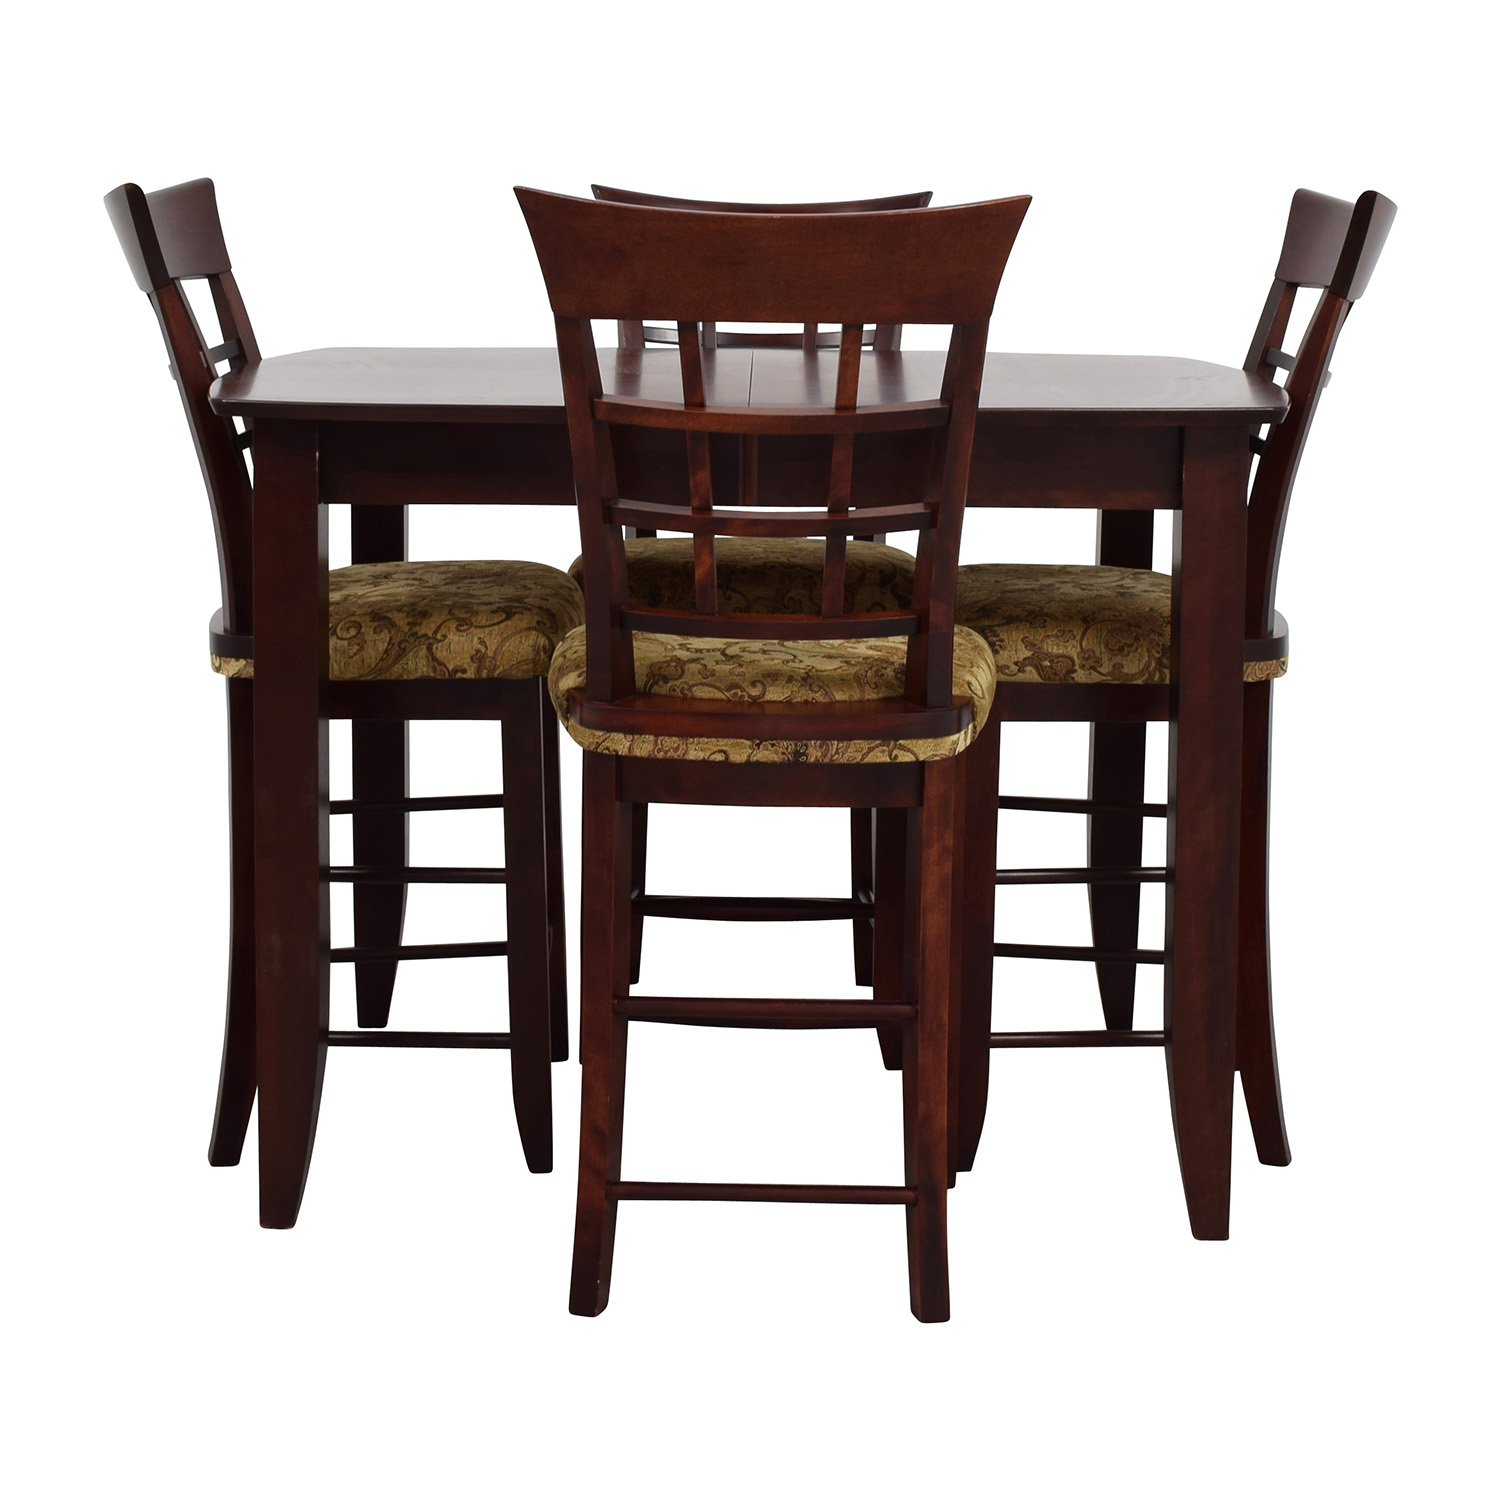 High Dining Room Chairs: High Top Dining Table With Four Chairs / Tables